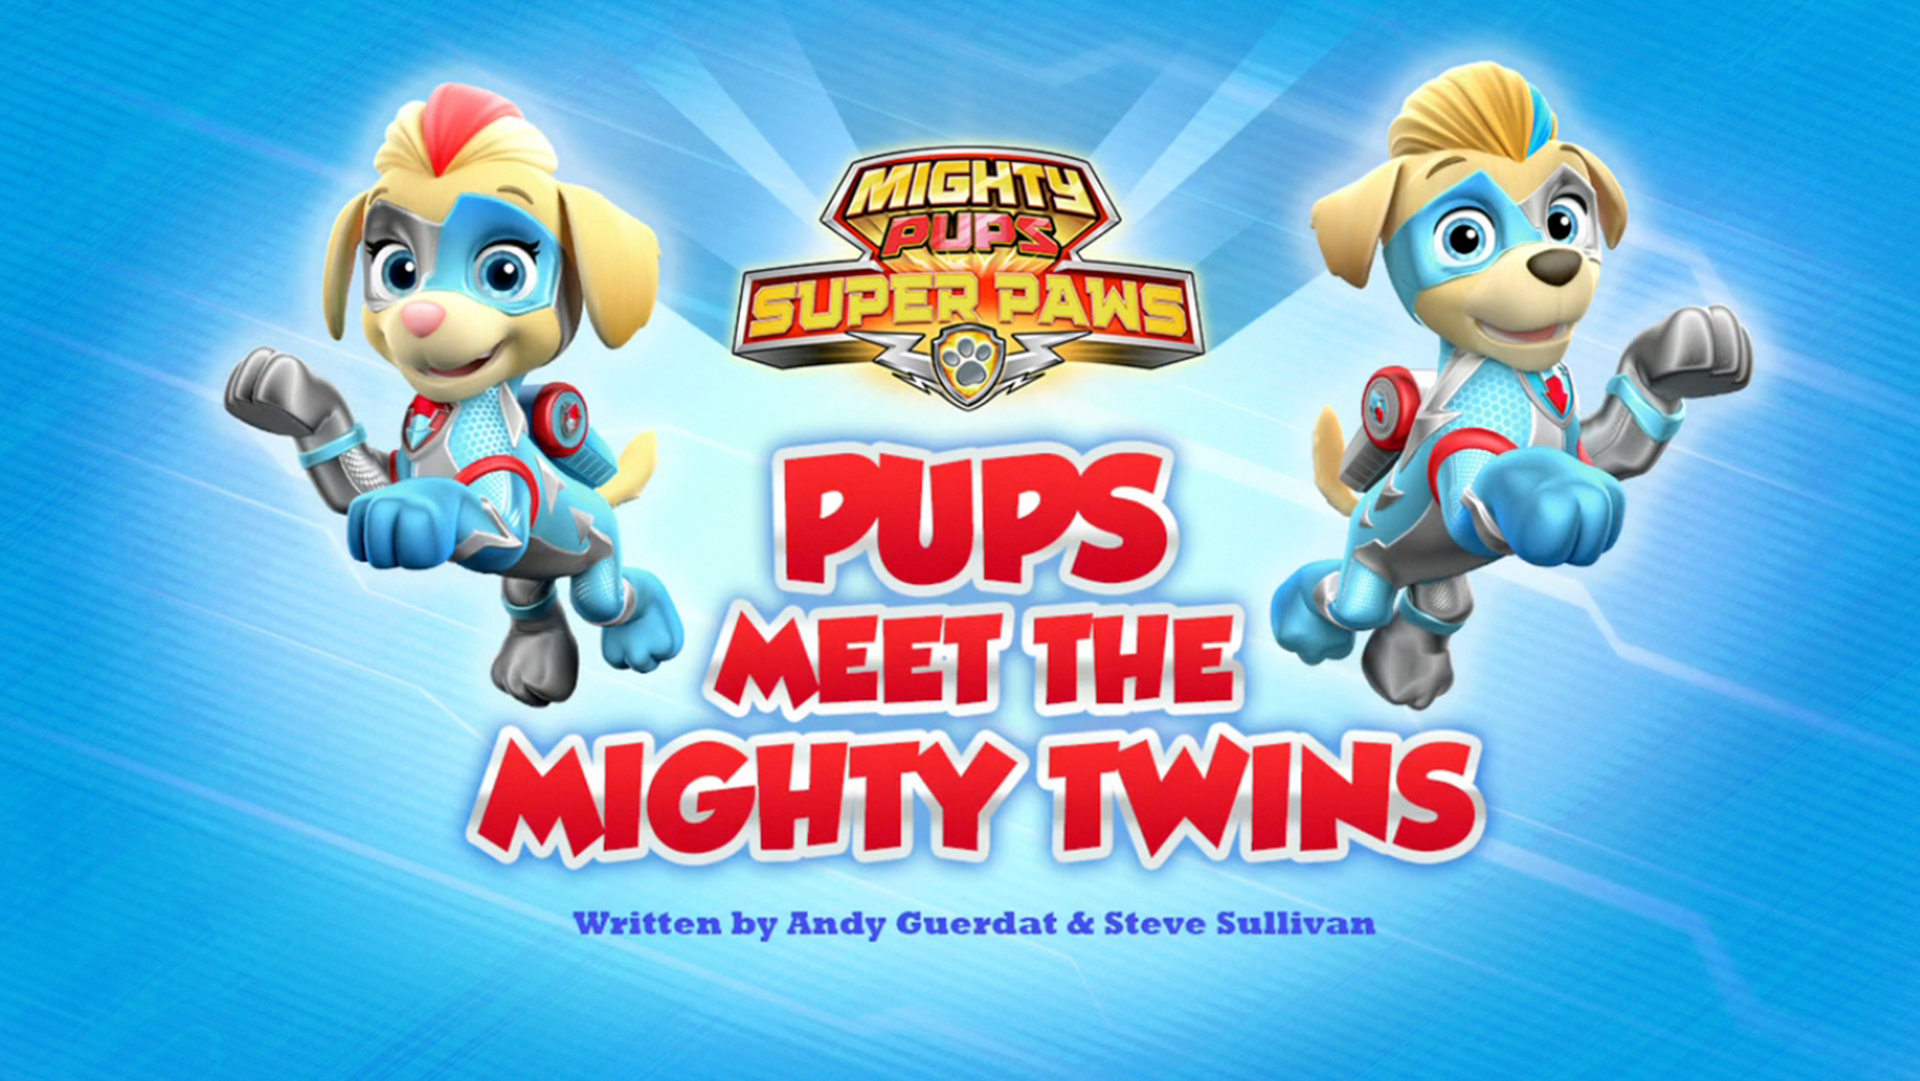 Mighty Pups Super Paws Pups Meet The Mighty Twins Paw